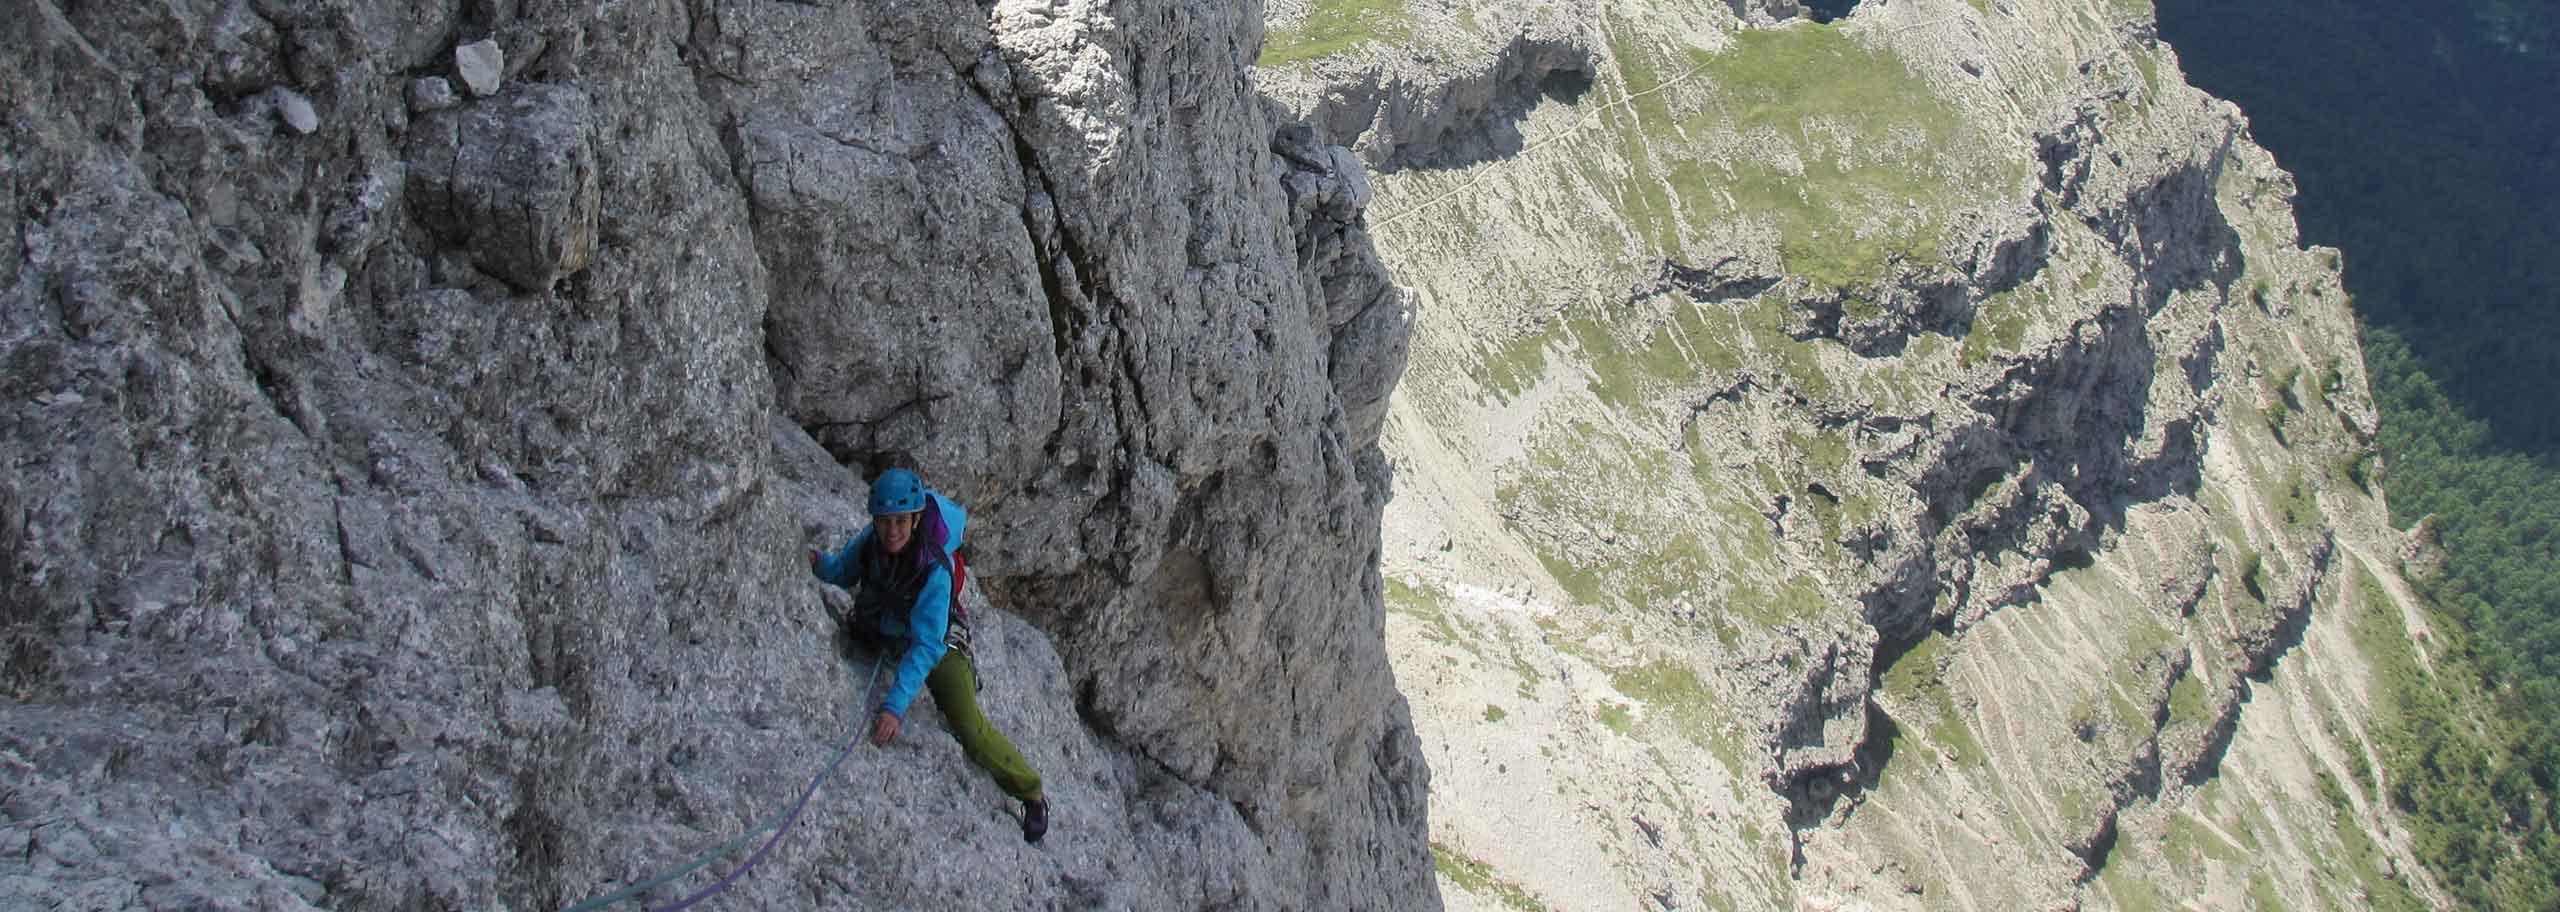 Rock Climbing with a Mountain Guide in San Martino di Castrozza